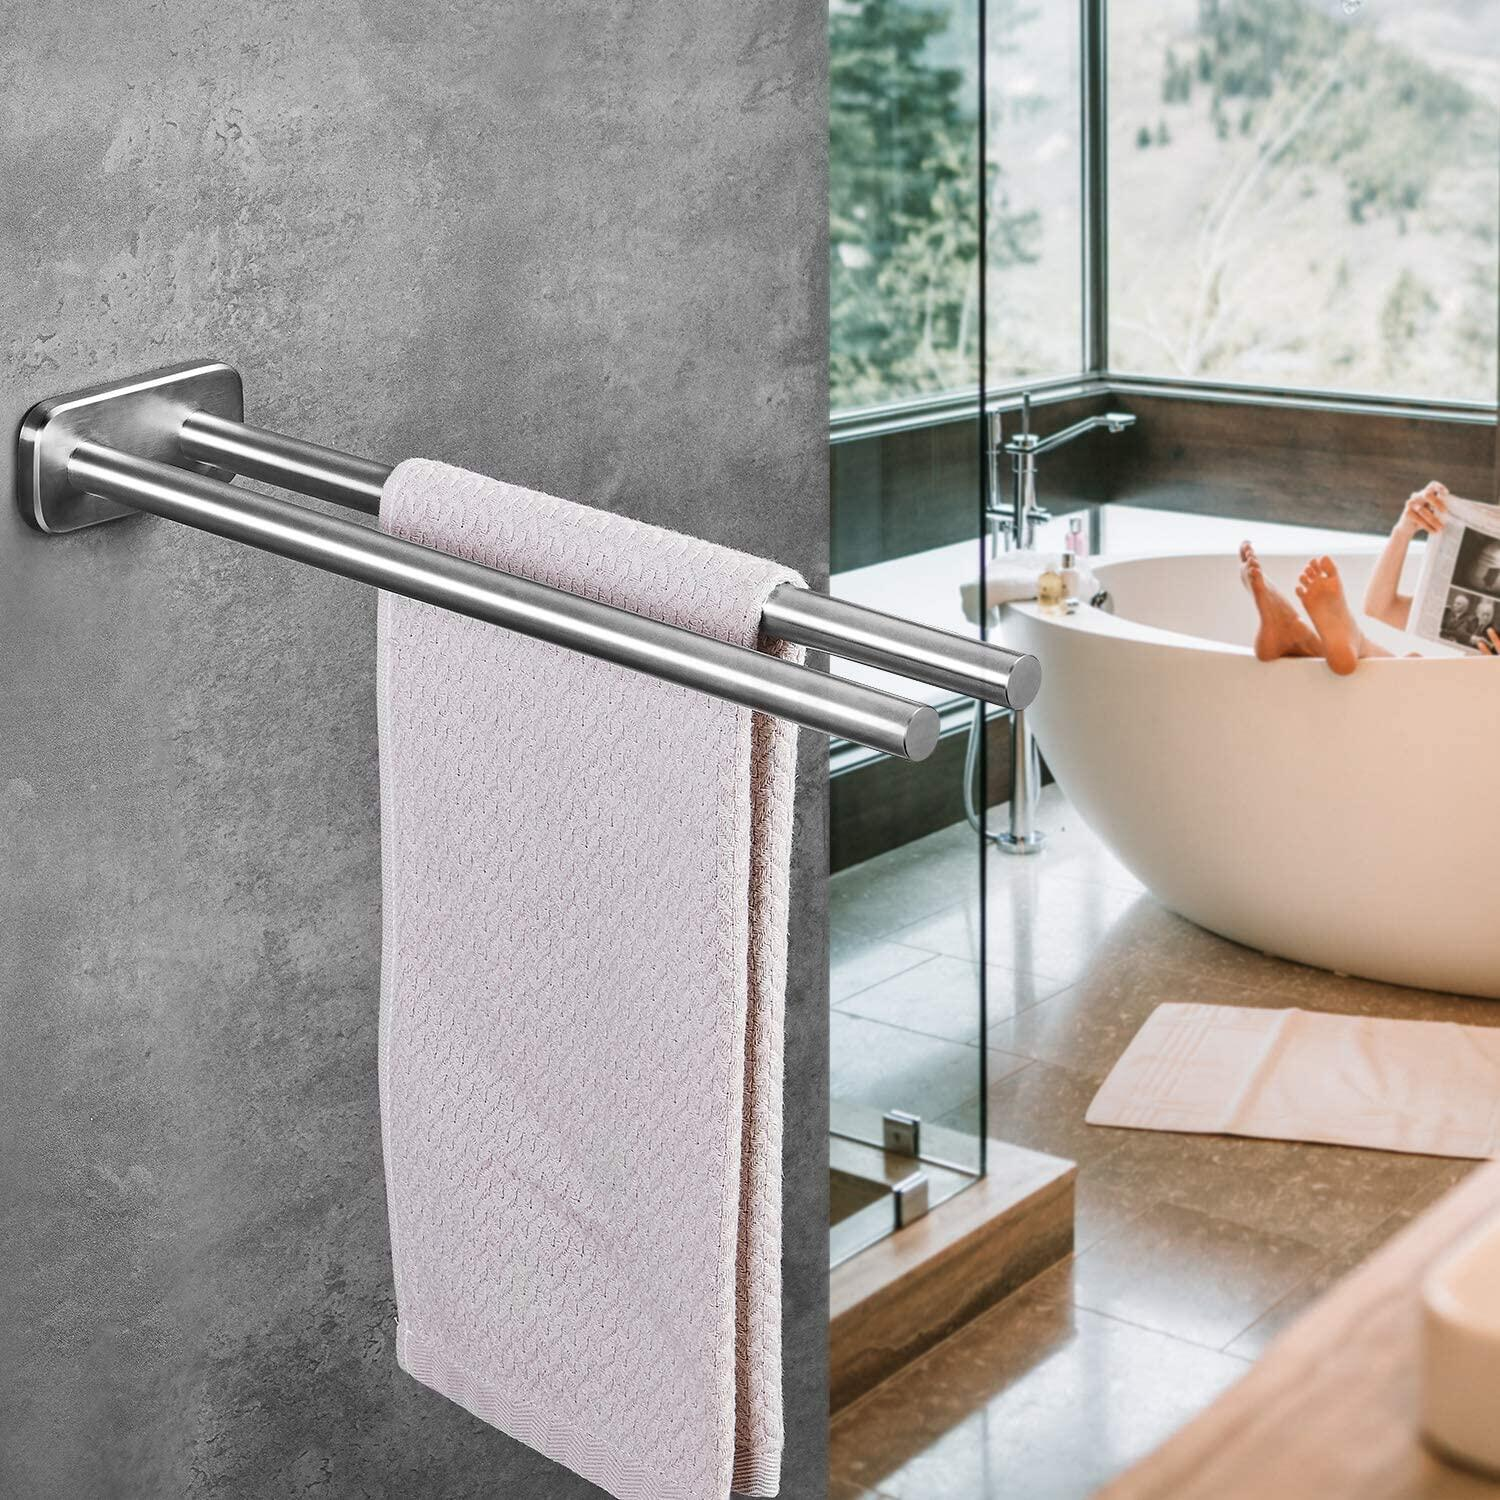 【New】JS Self Adhesive Towel Holder,Hand Towel Rail 40 cm Double Arm Brushed Stainless Steel Towel Rail Wall Mounted Towel Holder Bathroom and Kitchen JS Hand Towel Rail 40 cm Double Arm Brushed Stainless Steel Towel Rail Wall Mounted Towel Holder Bathroom and Kitchen Double Arm Brushed Stainless Steel Towel Rail